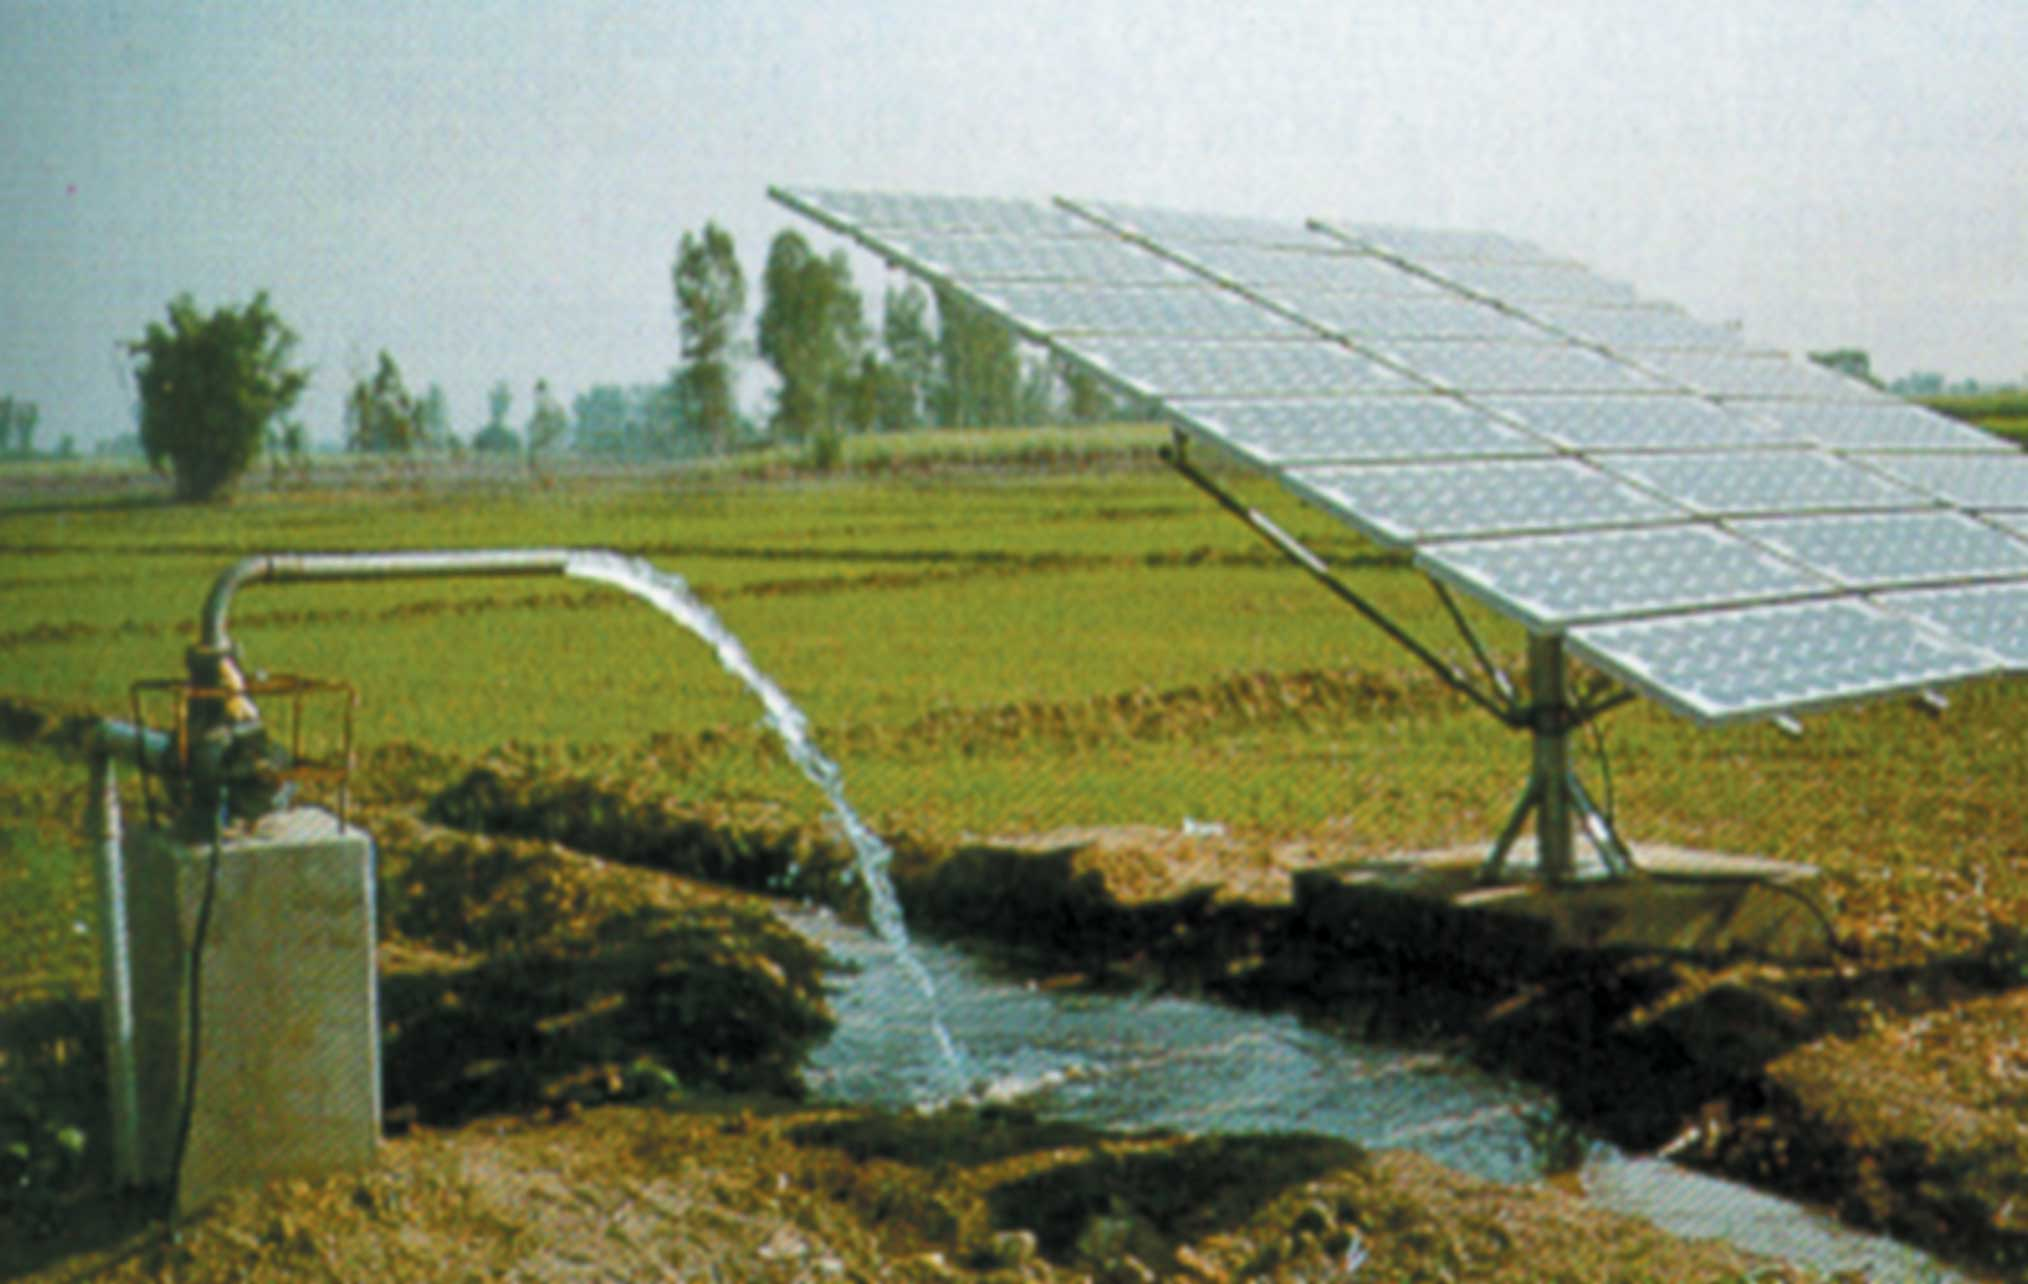 ... Manufacturers and consultants of all types of solar energy products